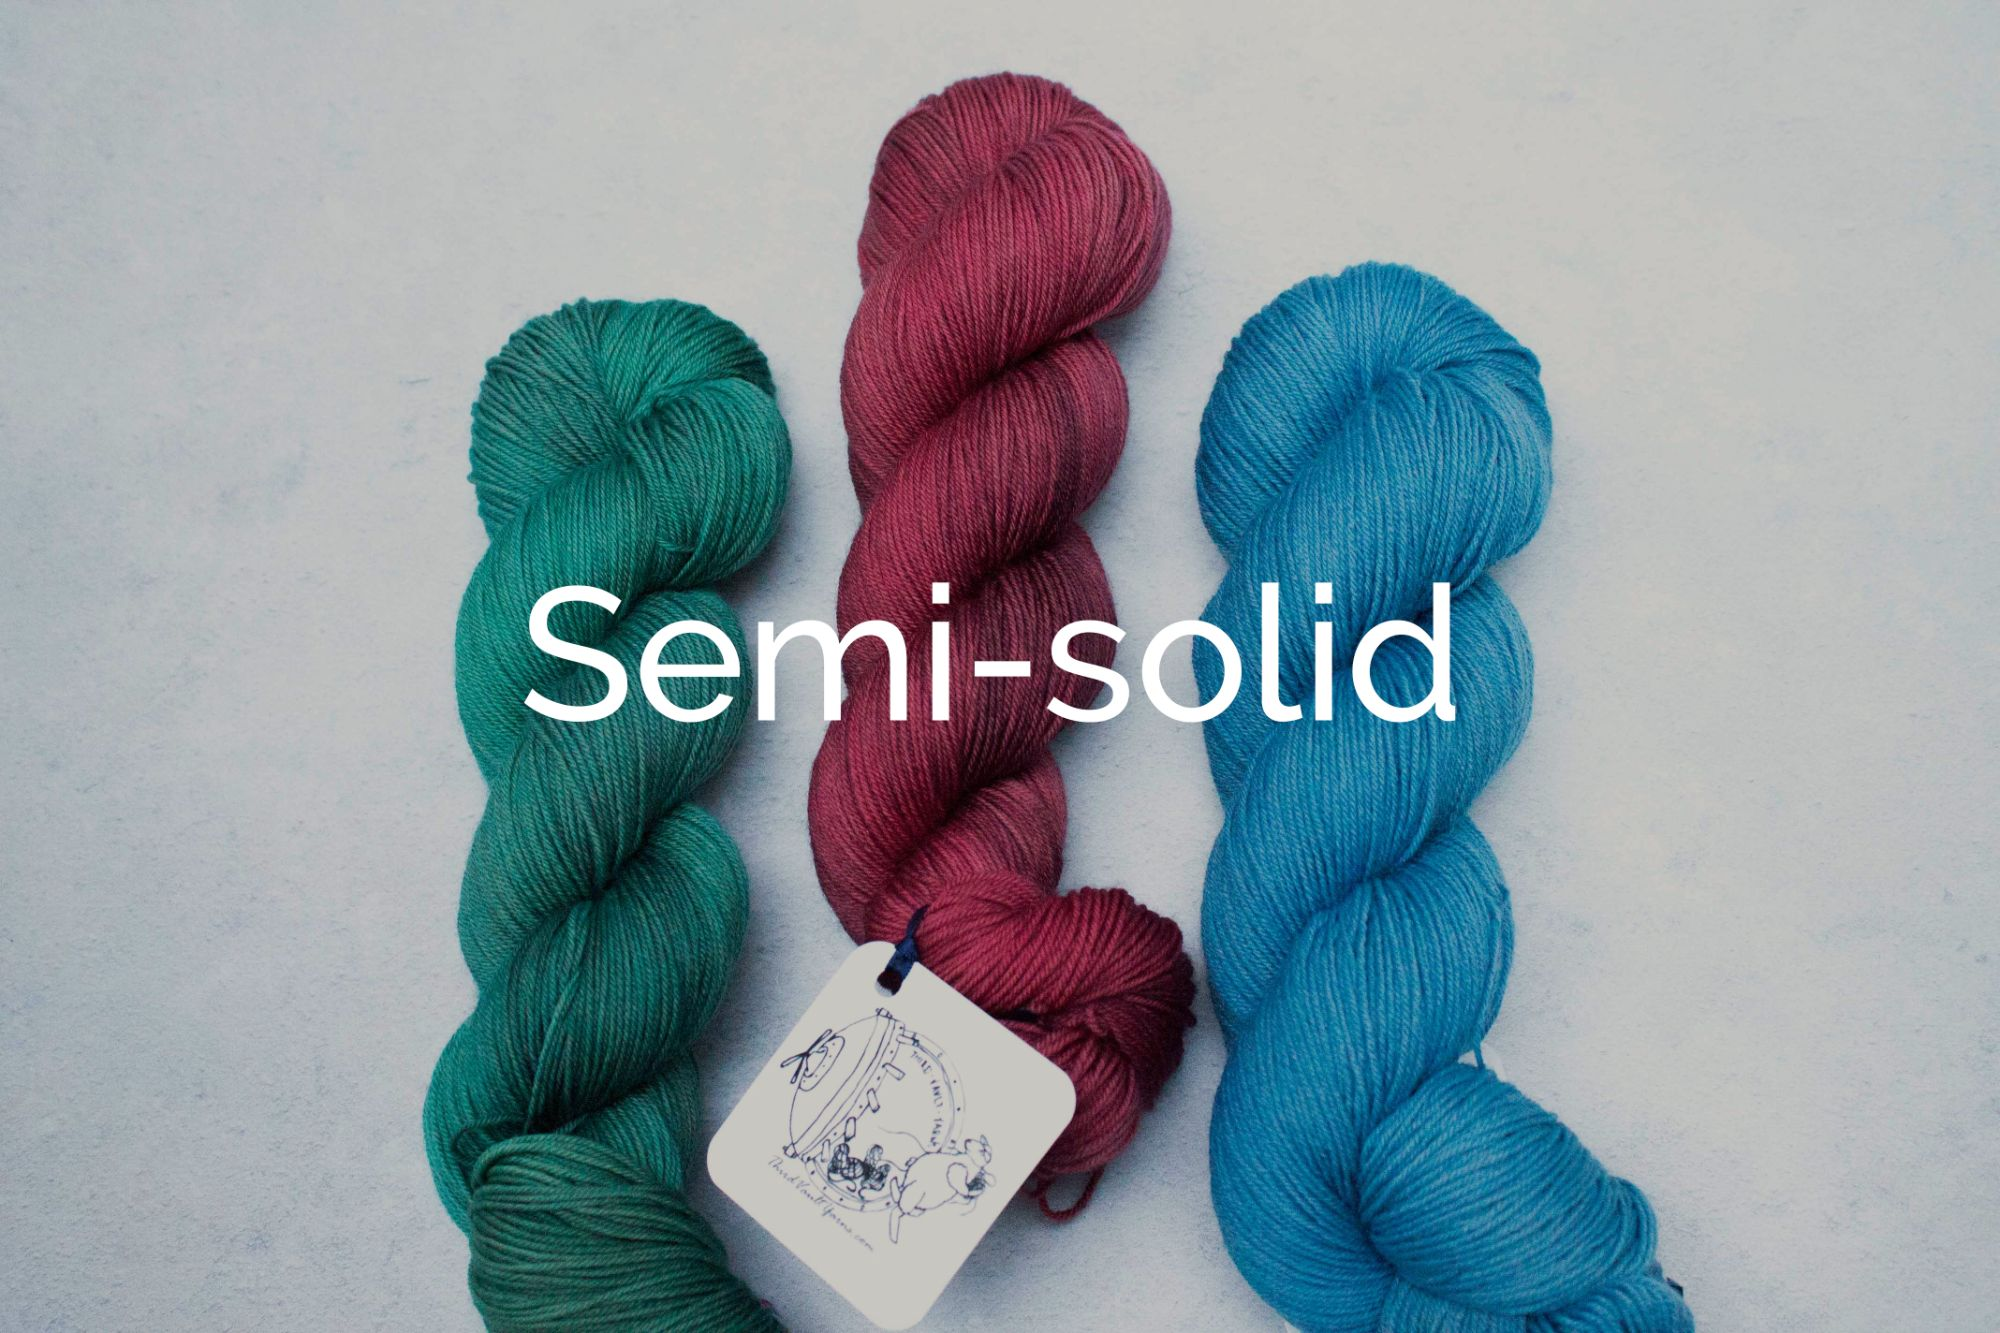 Check out our Semisolid yarns